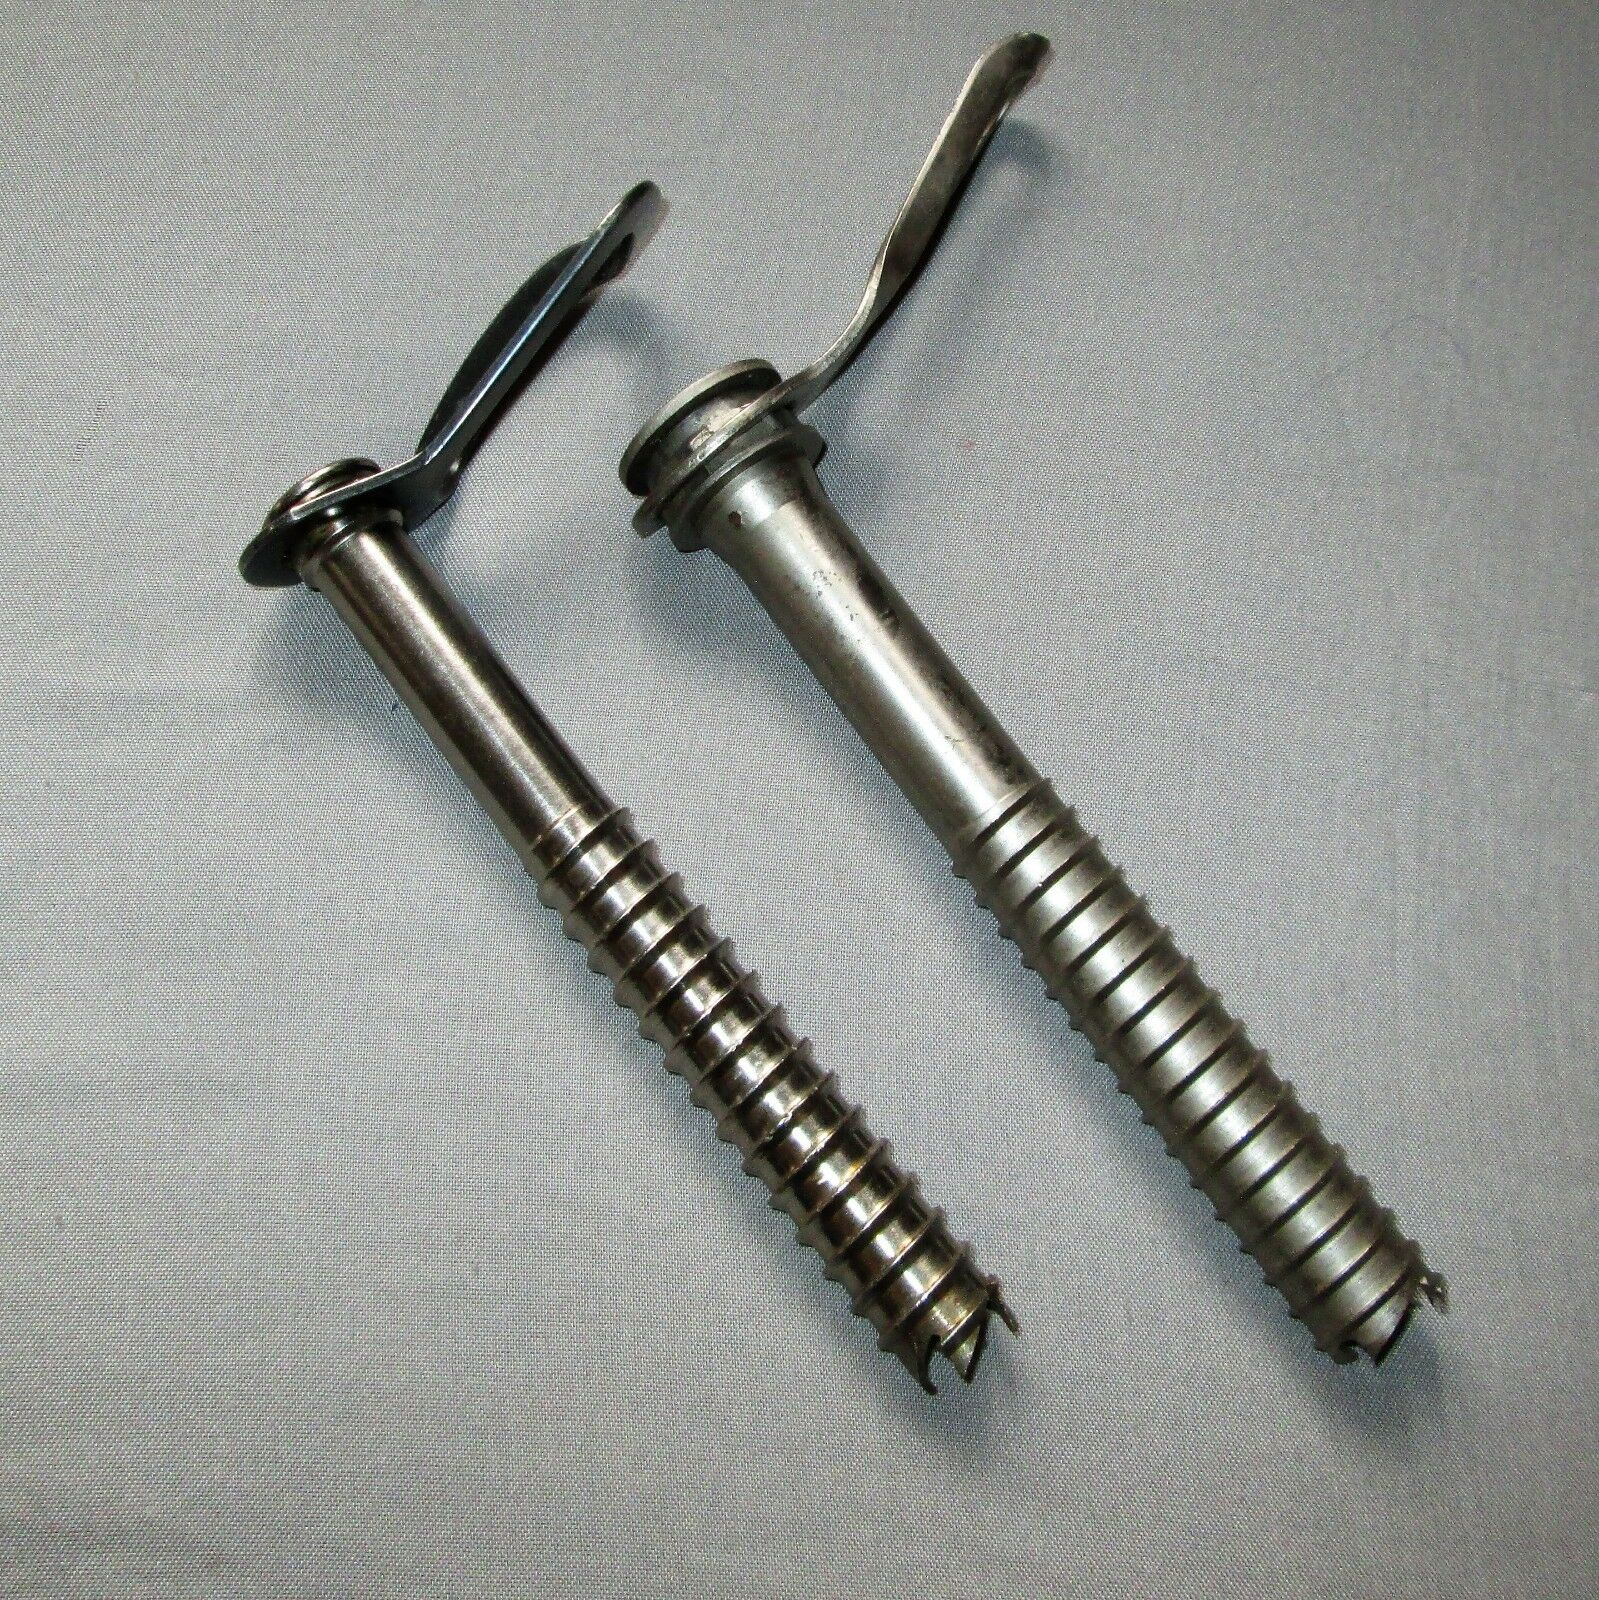 Vintage Chouinard and Lowe ice screws, ice screw greenical anchor 17cm, 18cm long